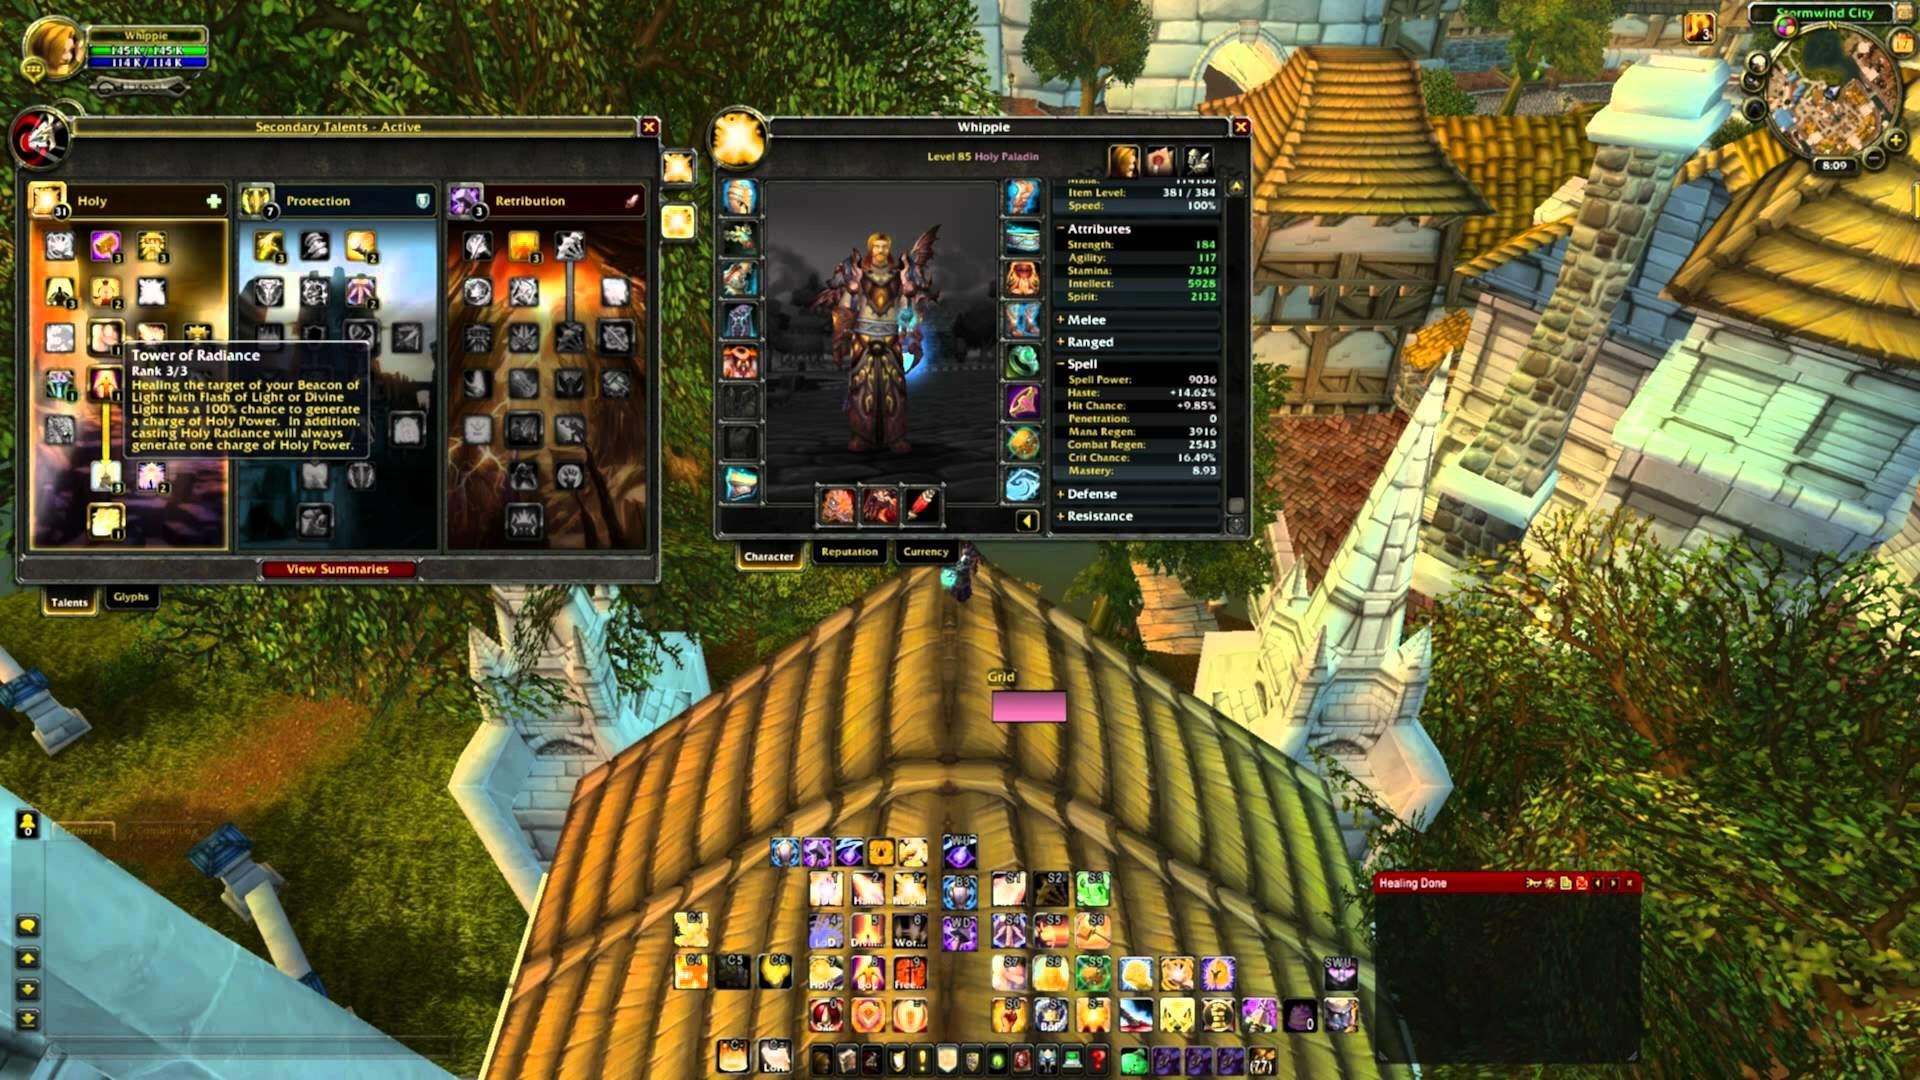 Res: 1920x1080, Cataclysm 4.3 Holy Paladin Talent Tree Guide - World of Warcraft